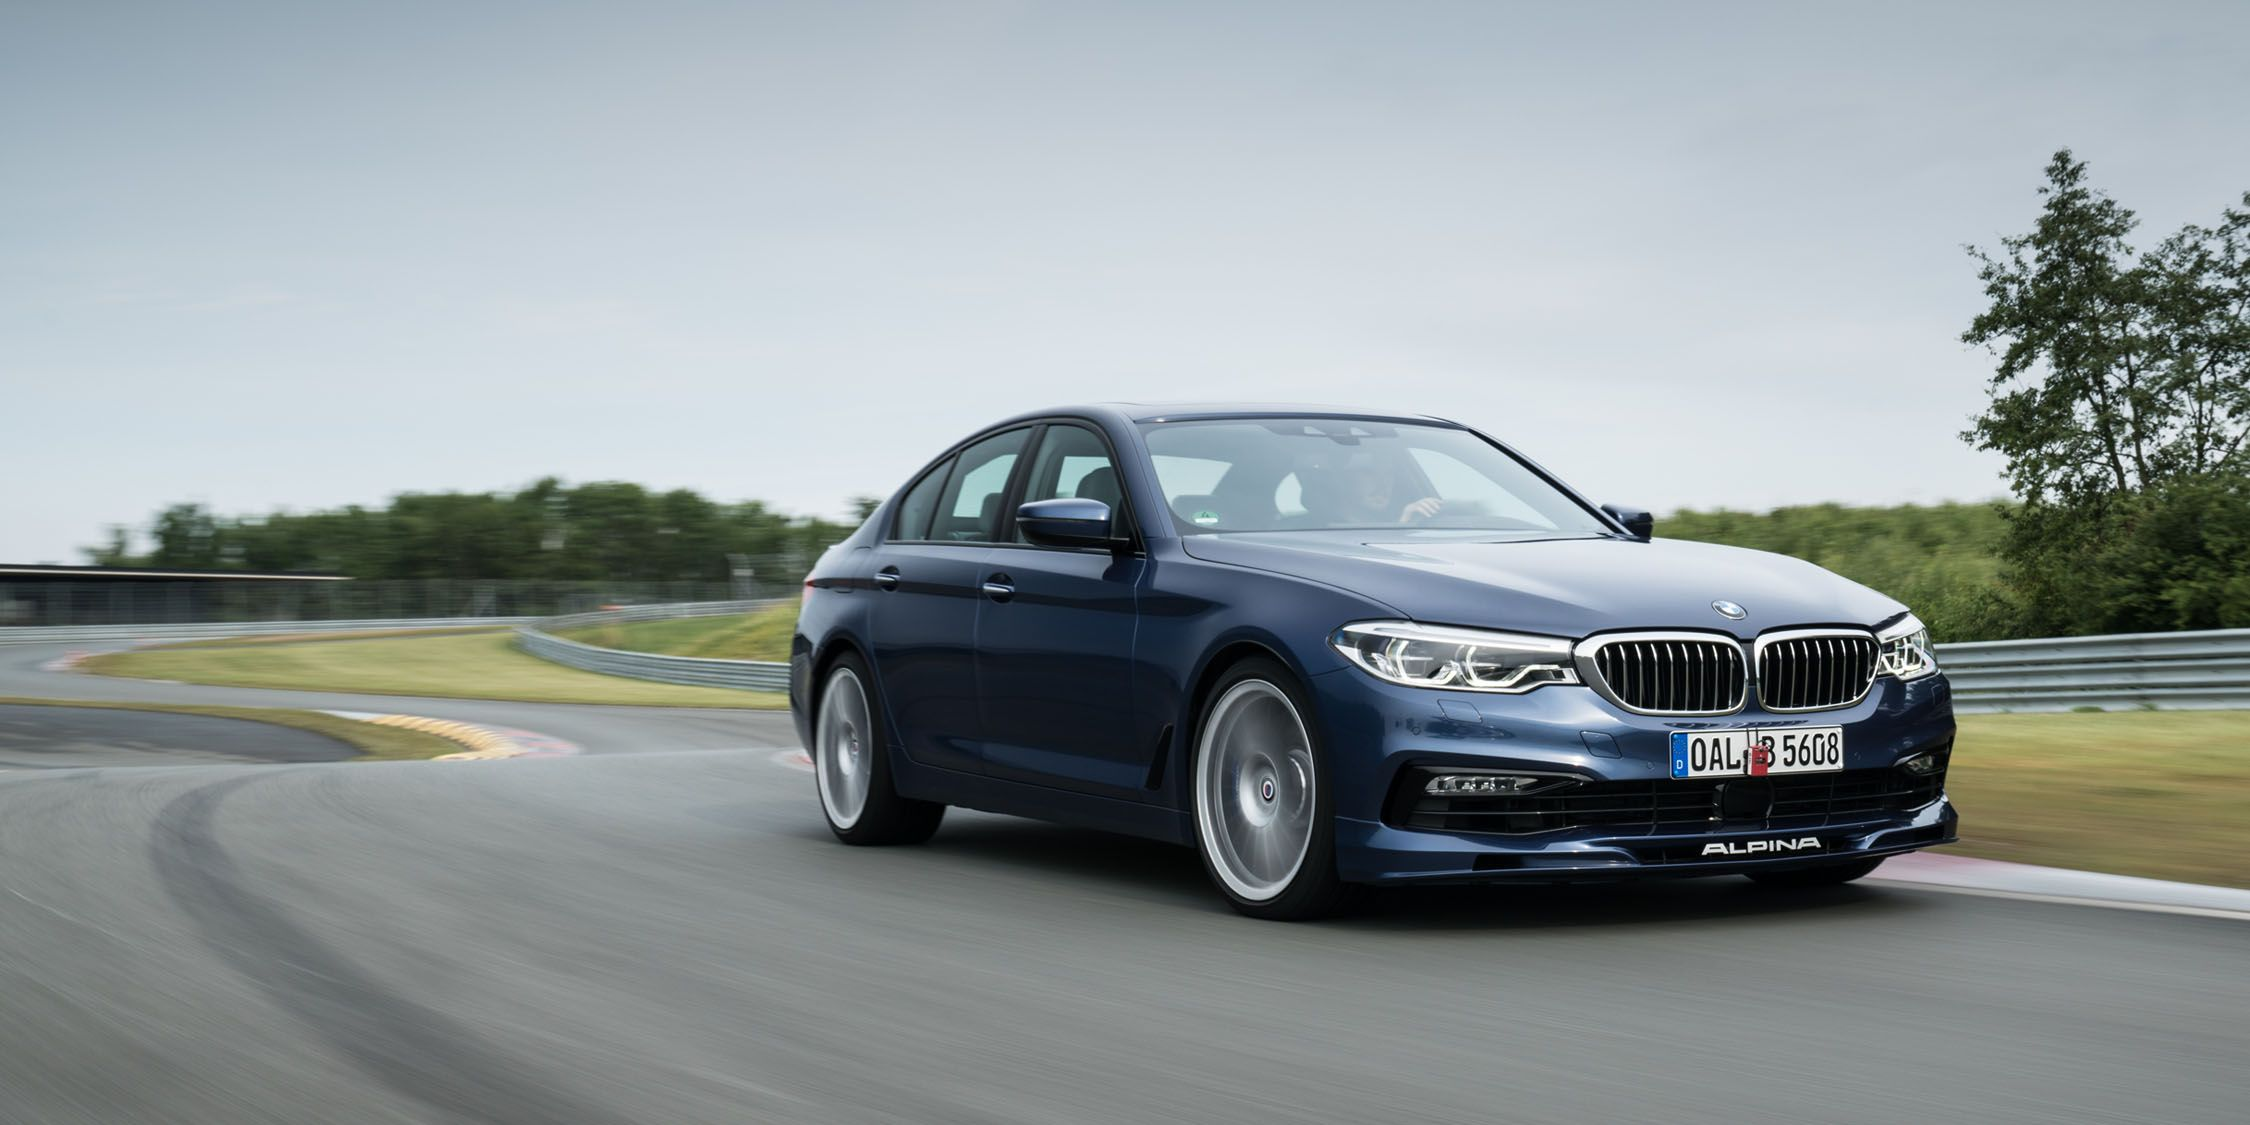 2018 Bmw 5 Series Alpina B5 Biturbo First Drive Review Car And